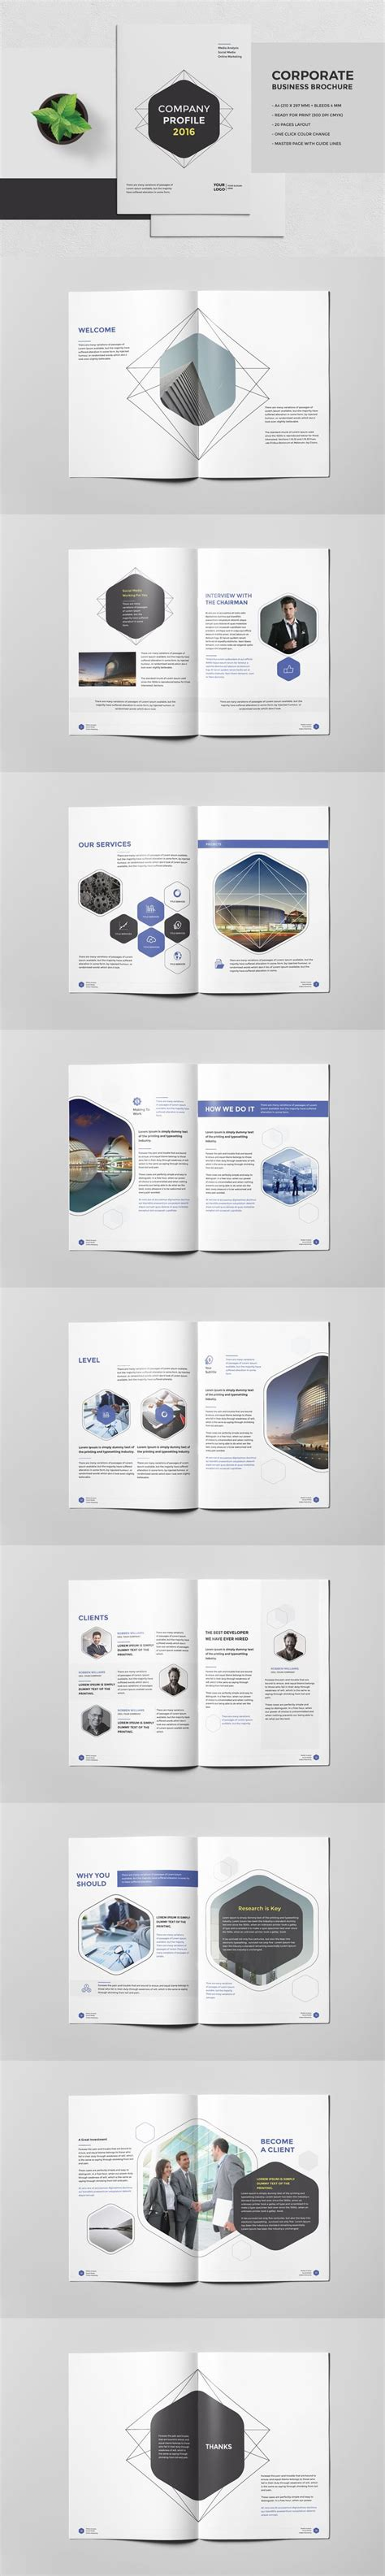 17 best ideas about corporate brochure design on pinterest